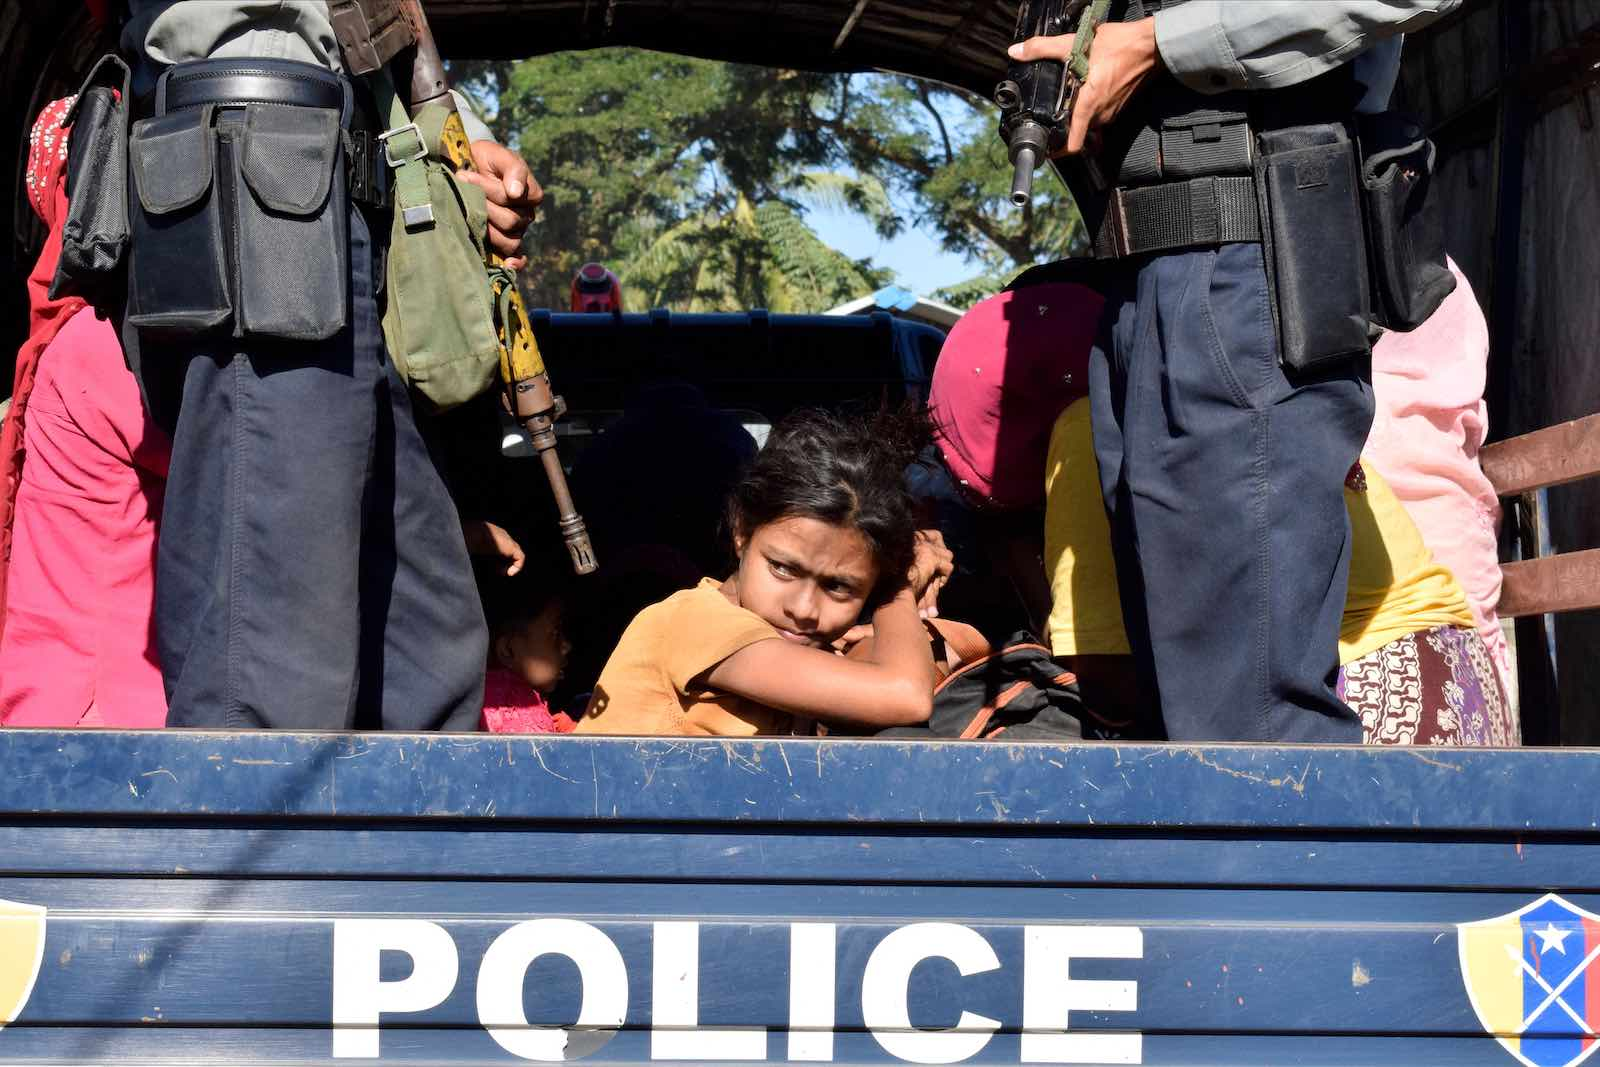 Myanmar police escort Rohingya back to their camp in Sittwe, Rakhine state, after being detained at sea, November 2018 (Photo: AFP/Getty Images)